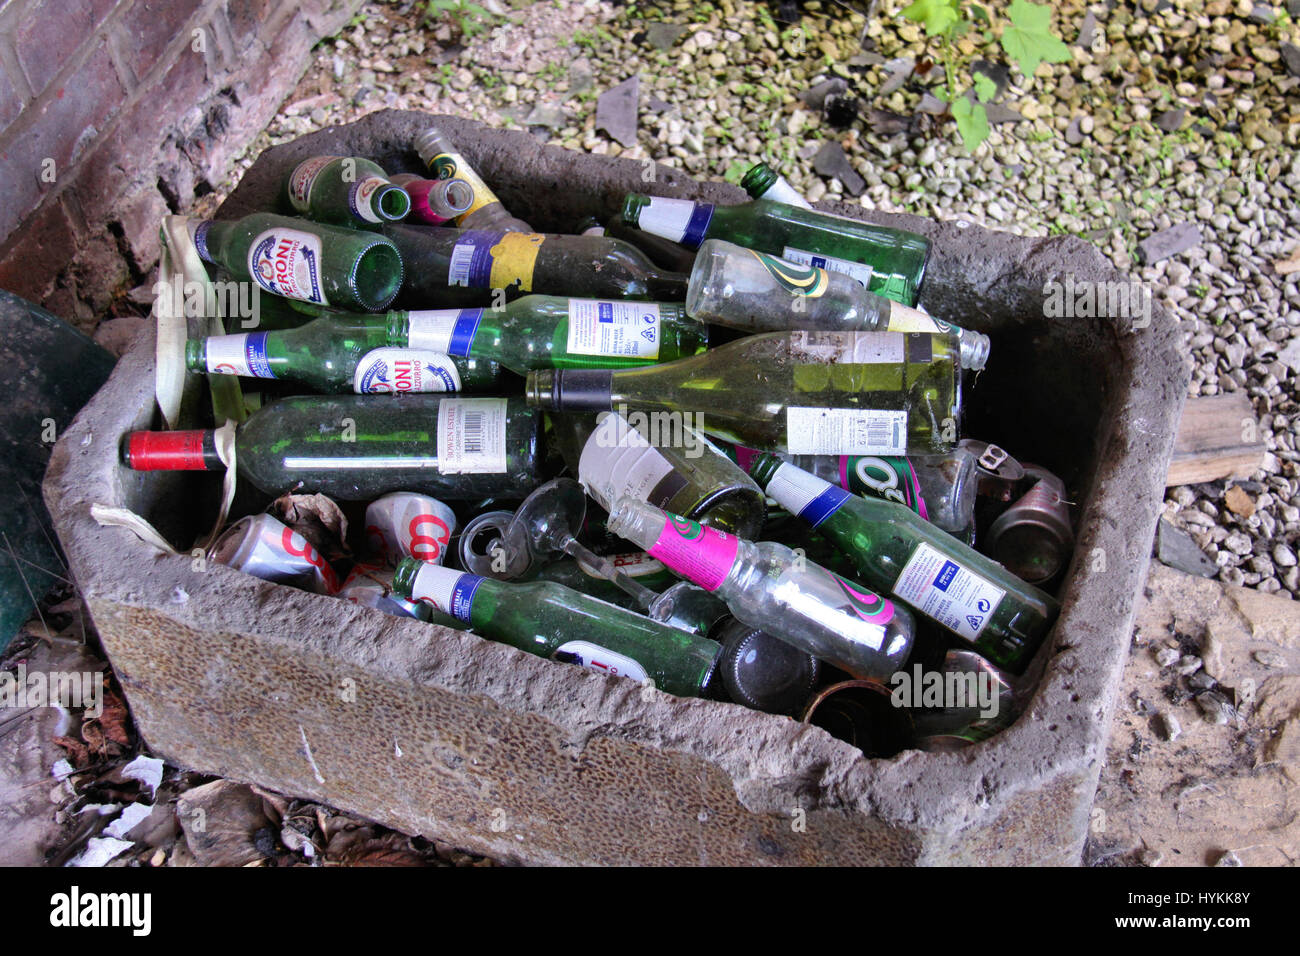 SHROPSHIRE, UK: Recycled bottles. THE DELAPADATED remains of 'murder mansion' where a failed business man shot dead - Stock Image